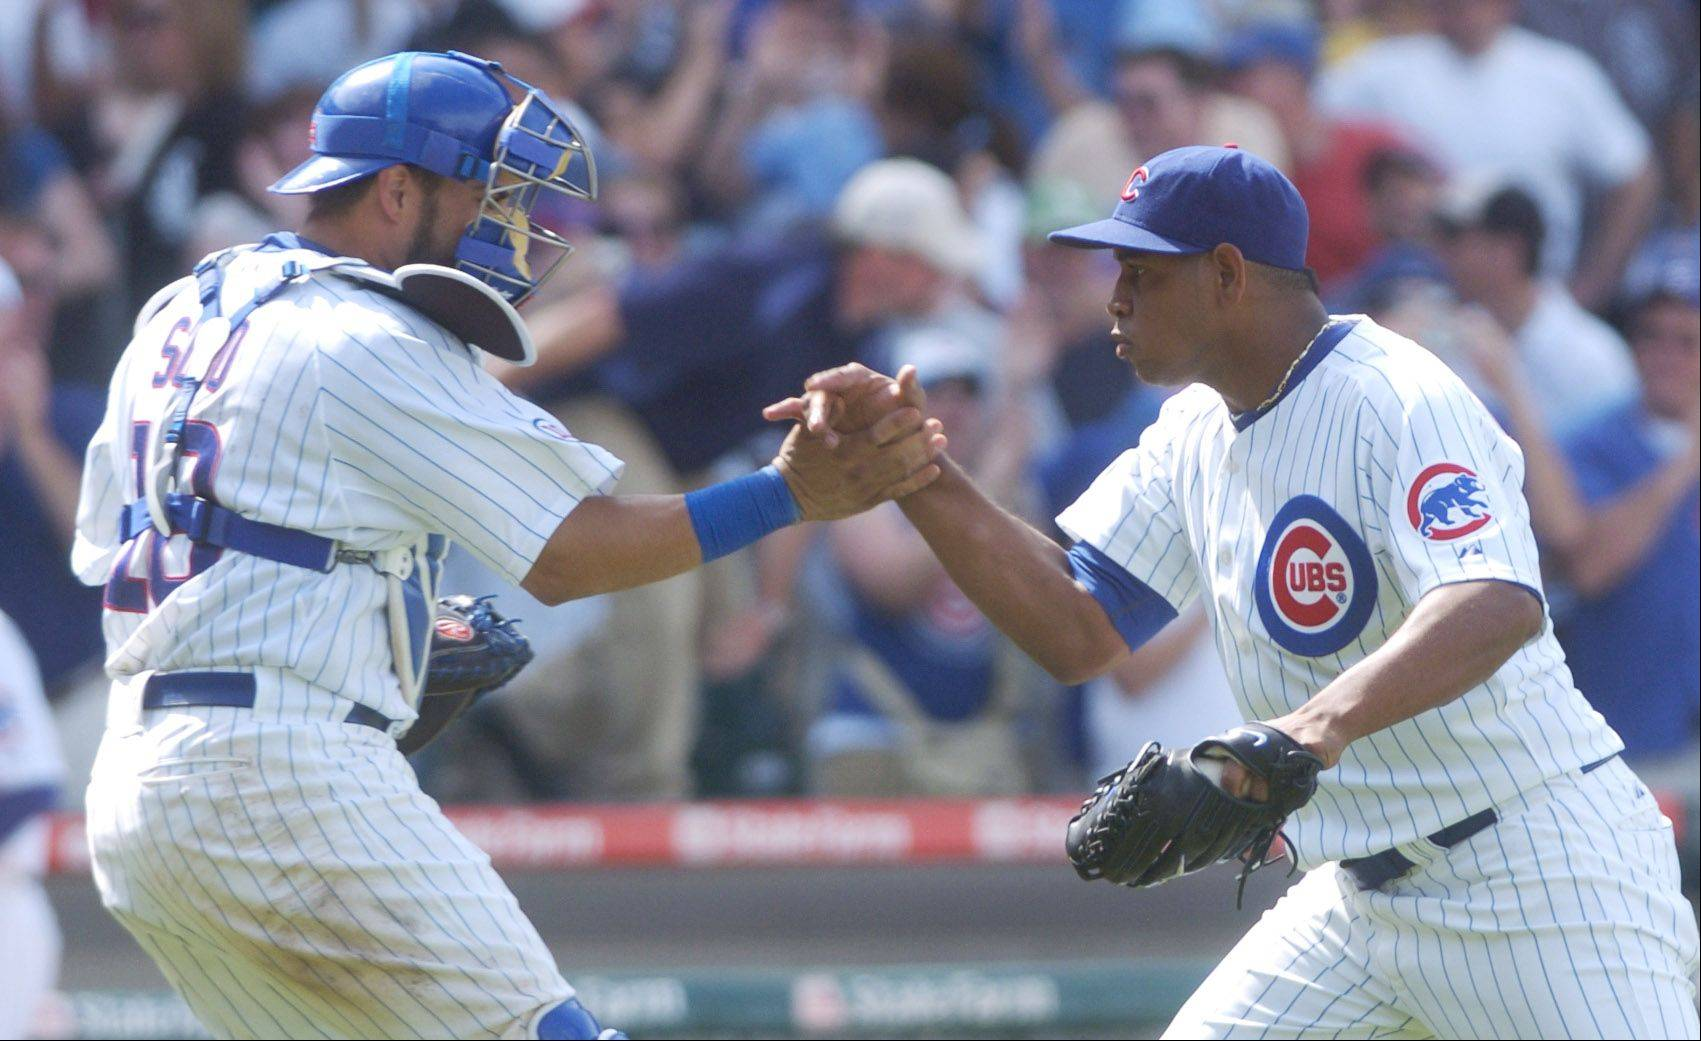 Cubs closer Carlos Marmol gets congratulated by catcher Geovany Soto after earning a save while pitching 1-1/3 innings in Sunday's 3-1 victory against the White Sox at Wrigley Field